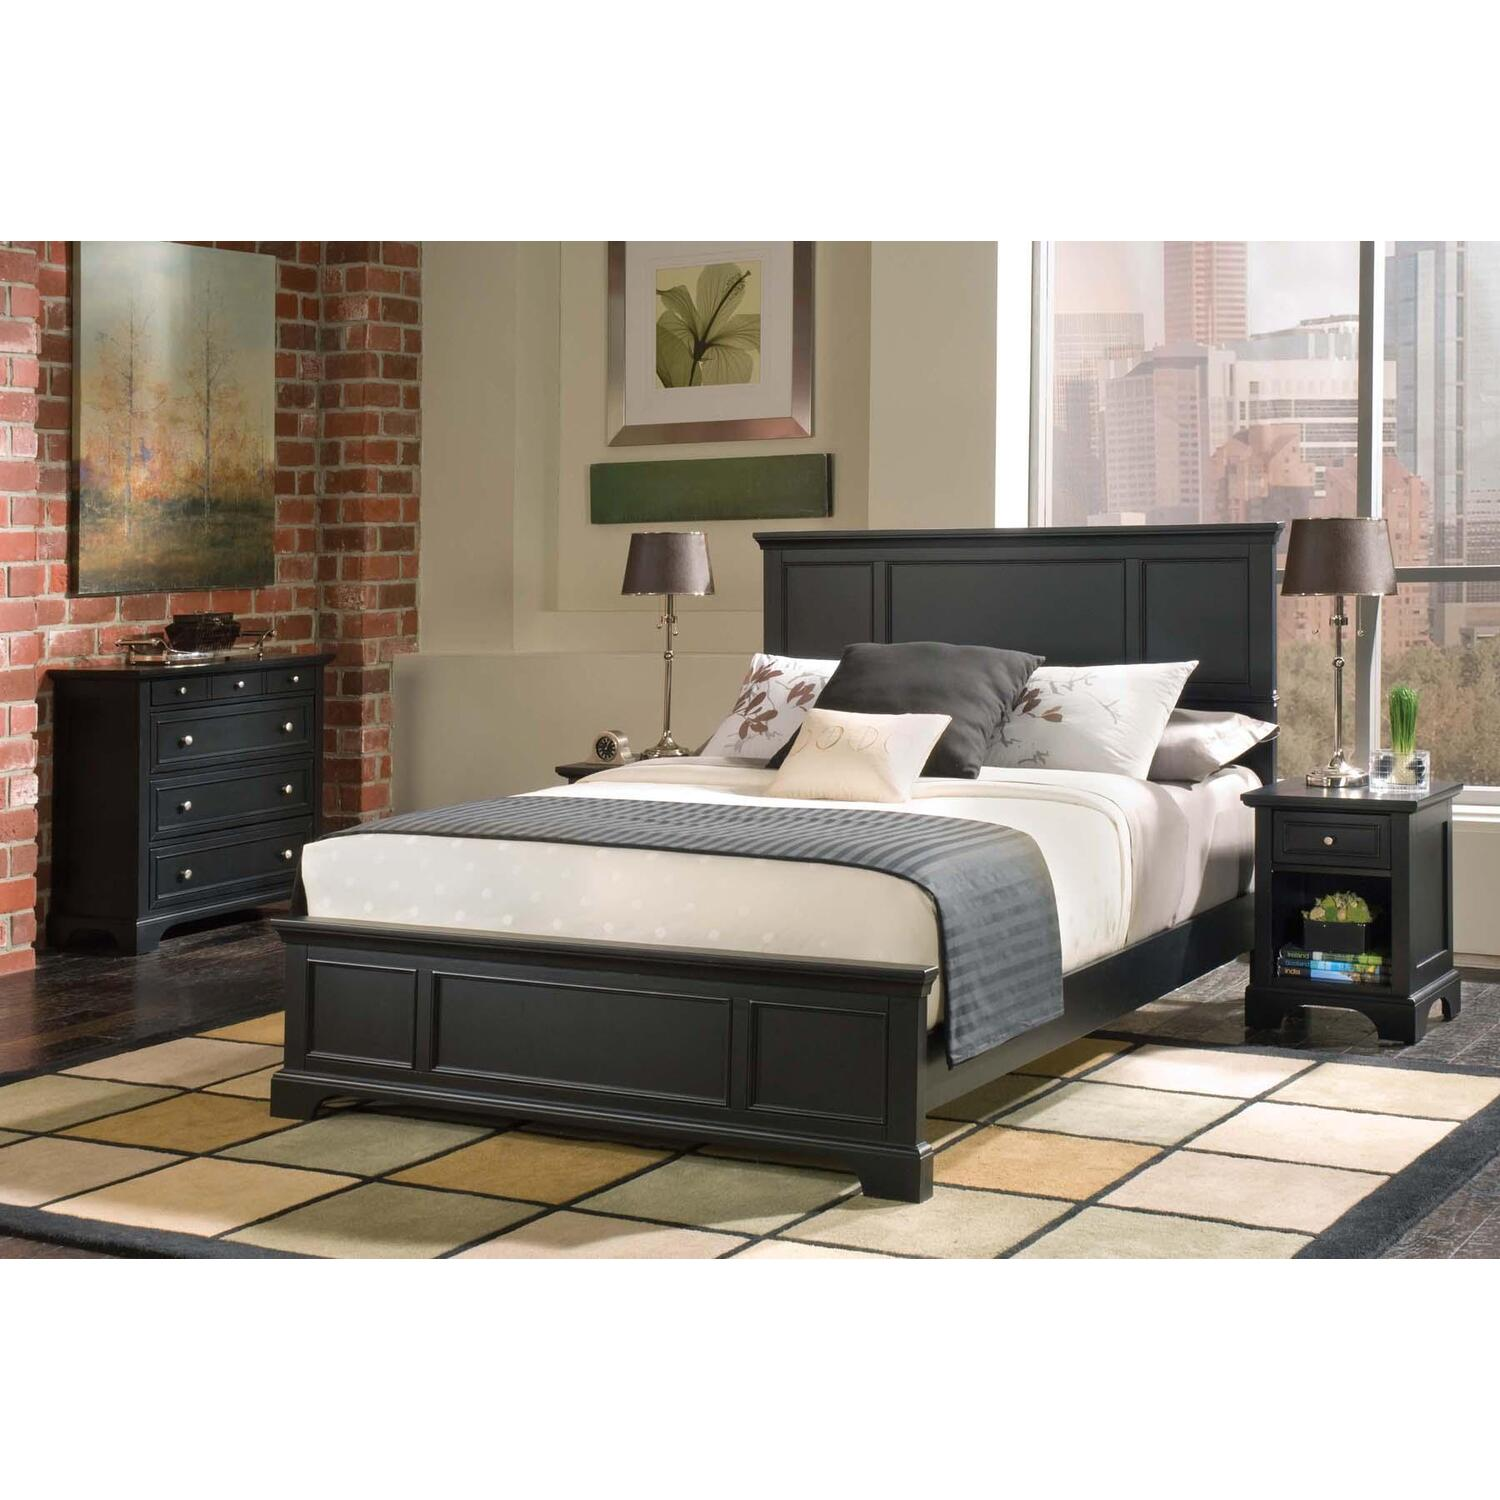 Home styles bedford queen bed night stand and chest by for Home styles bedroom furniture